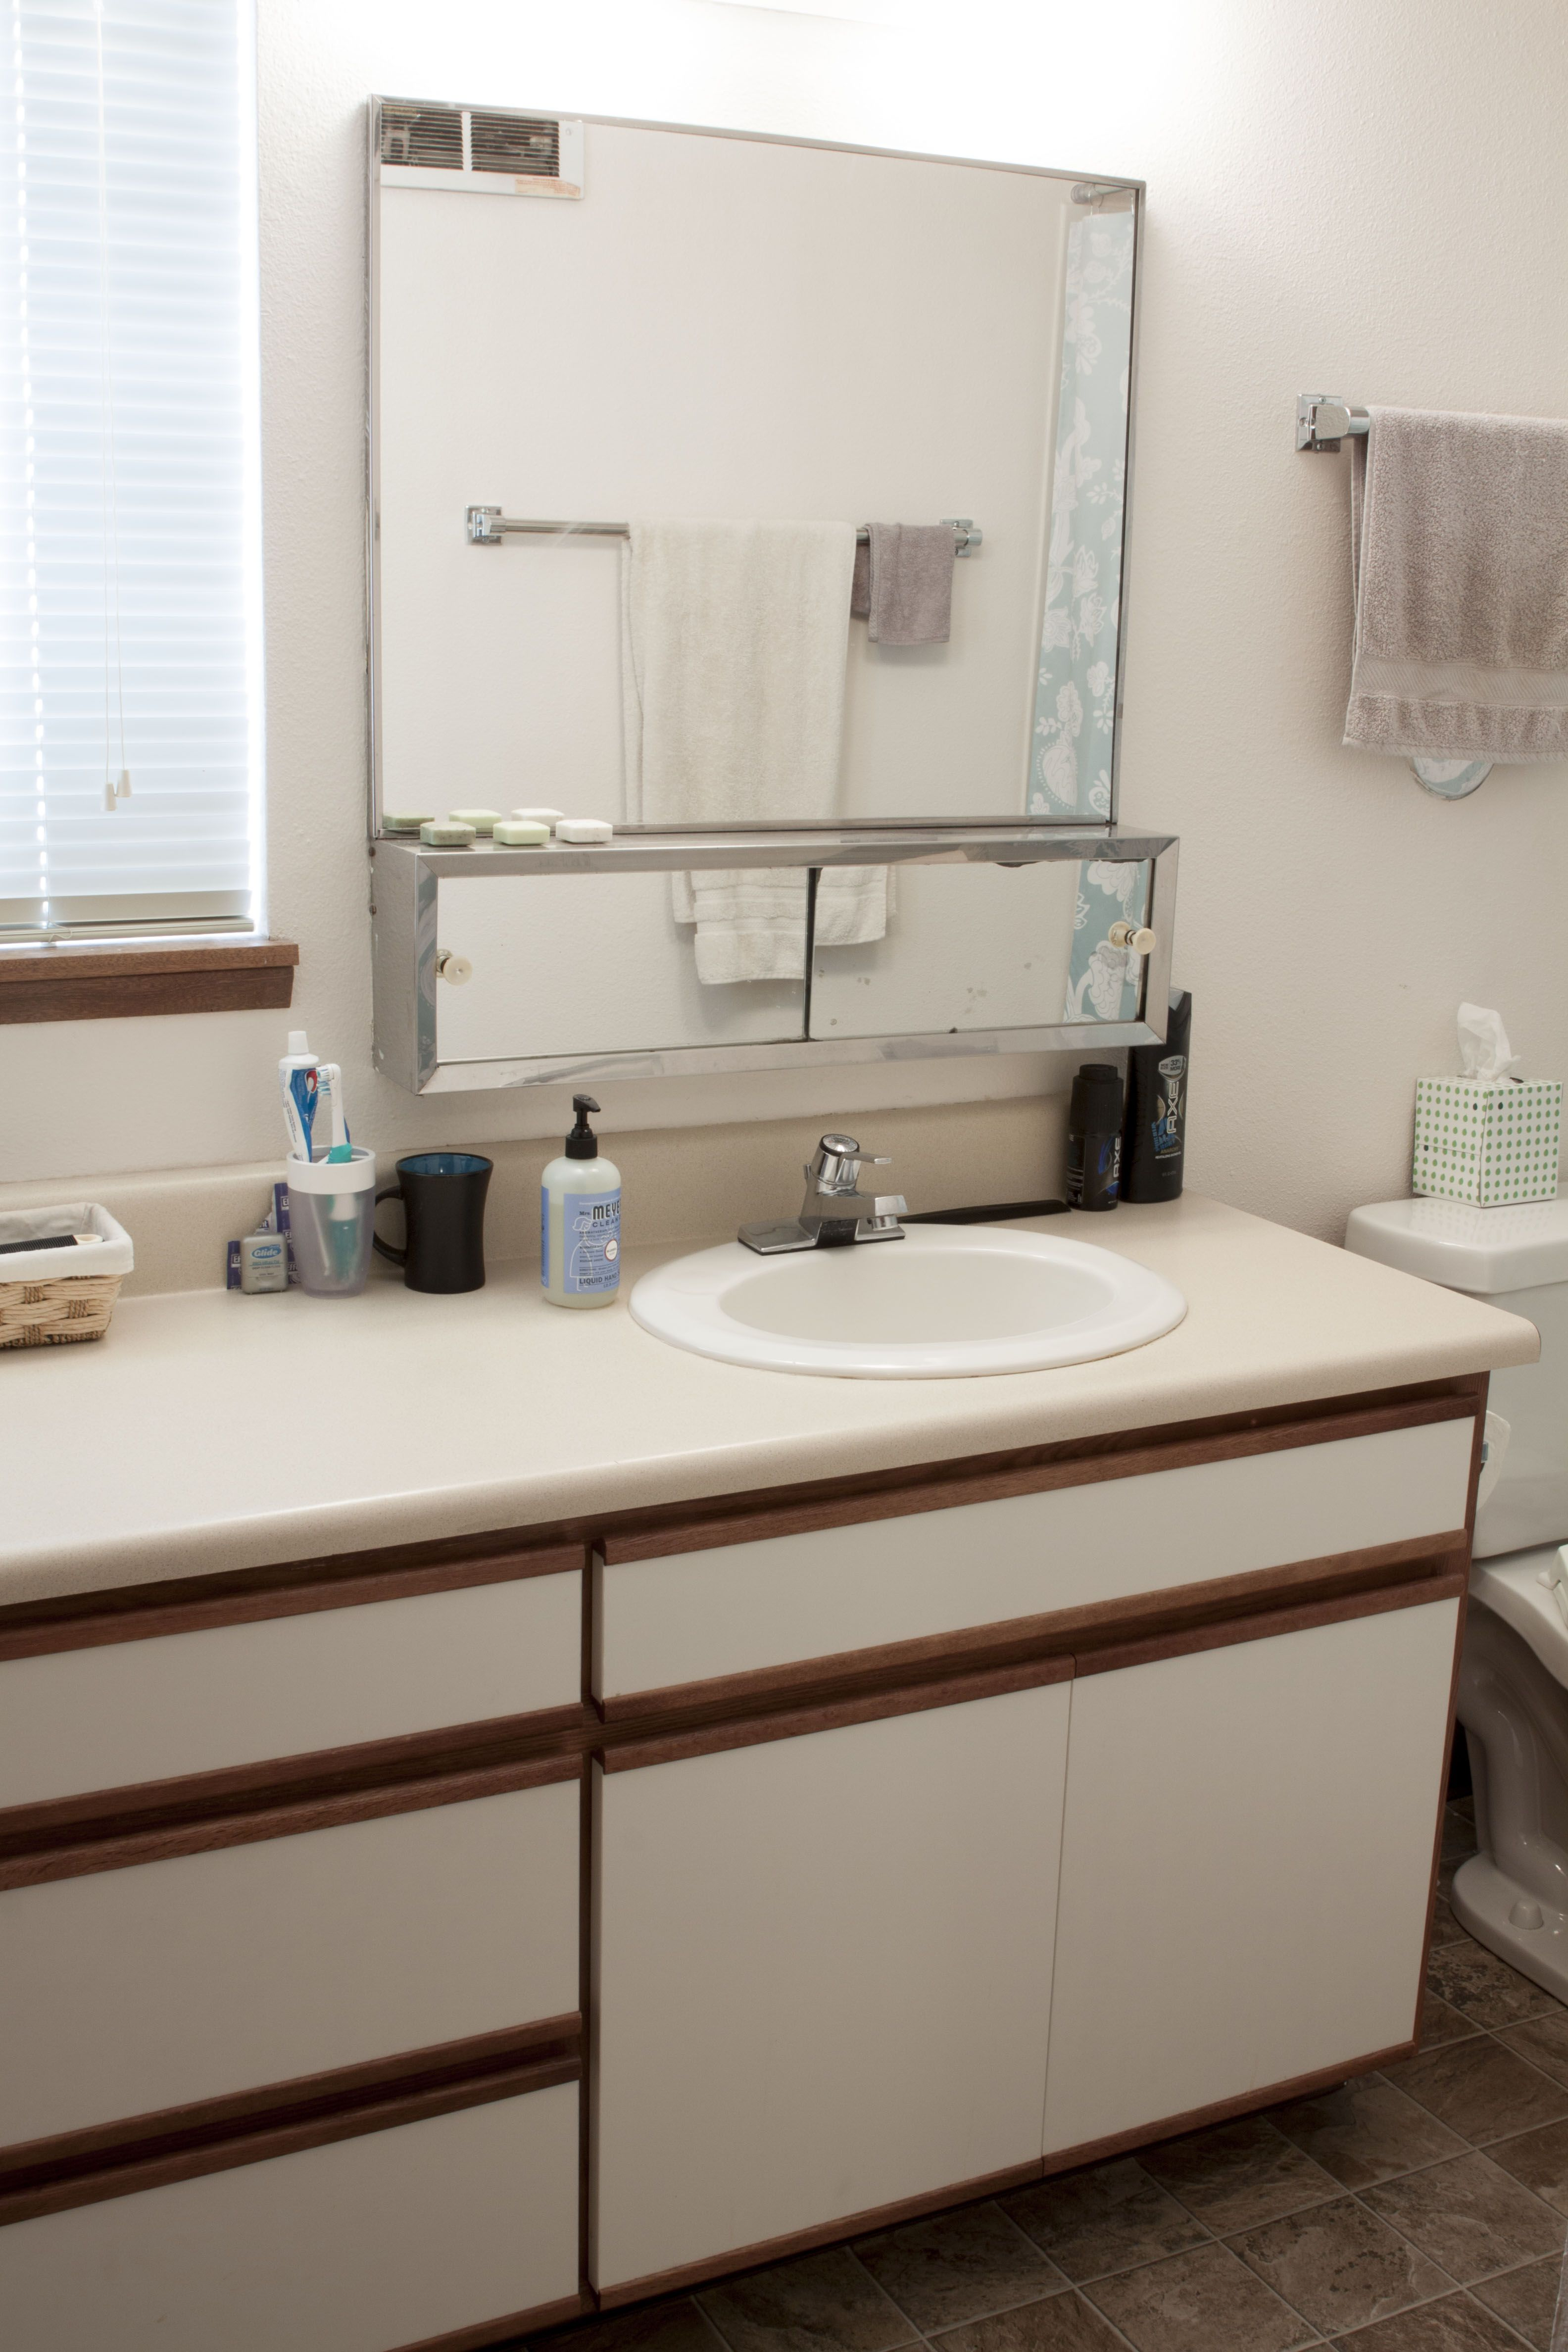 Quincy 2 Bedroom Flat Bathroom